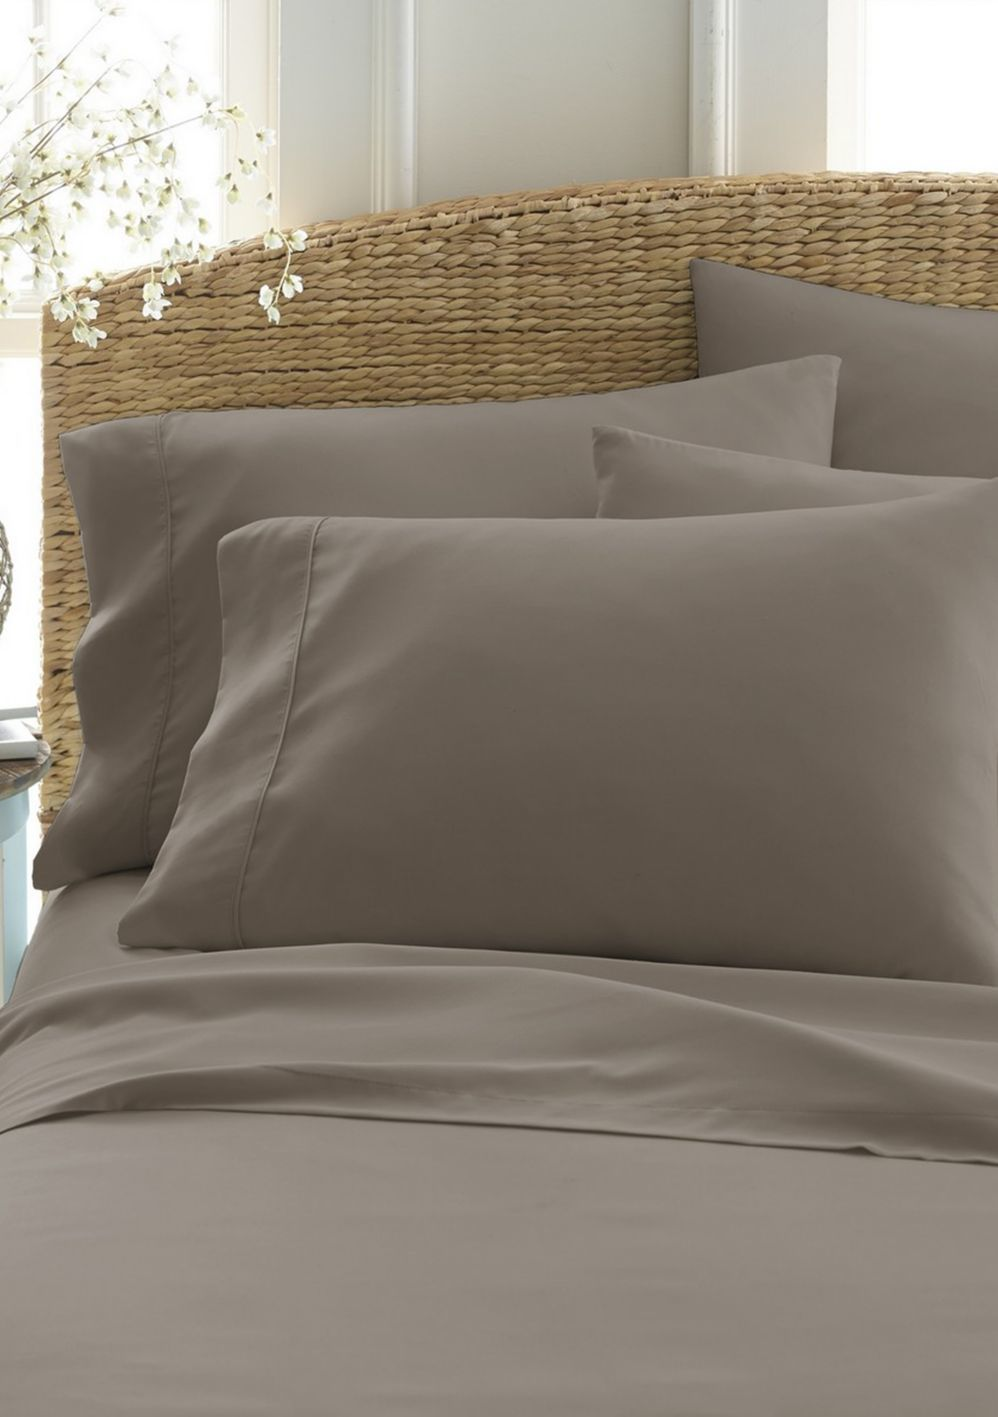 Luxury Inn Sage Home Collection Luxury Ultra Soft 6 Piece Bed Sheet Set - $49.49